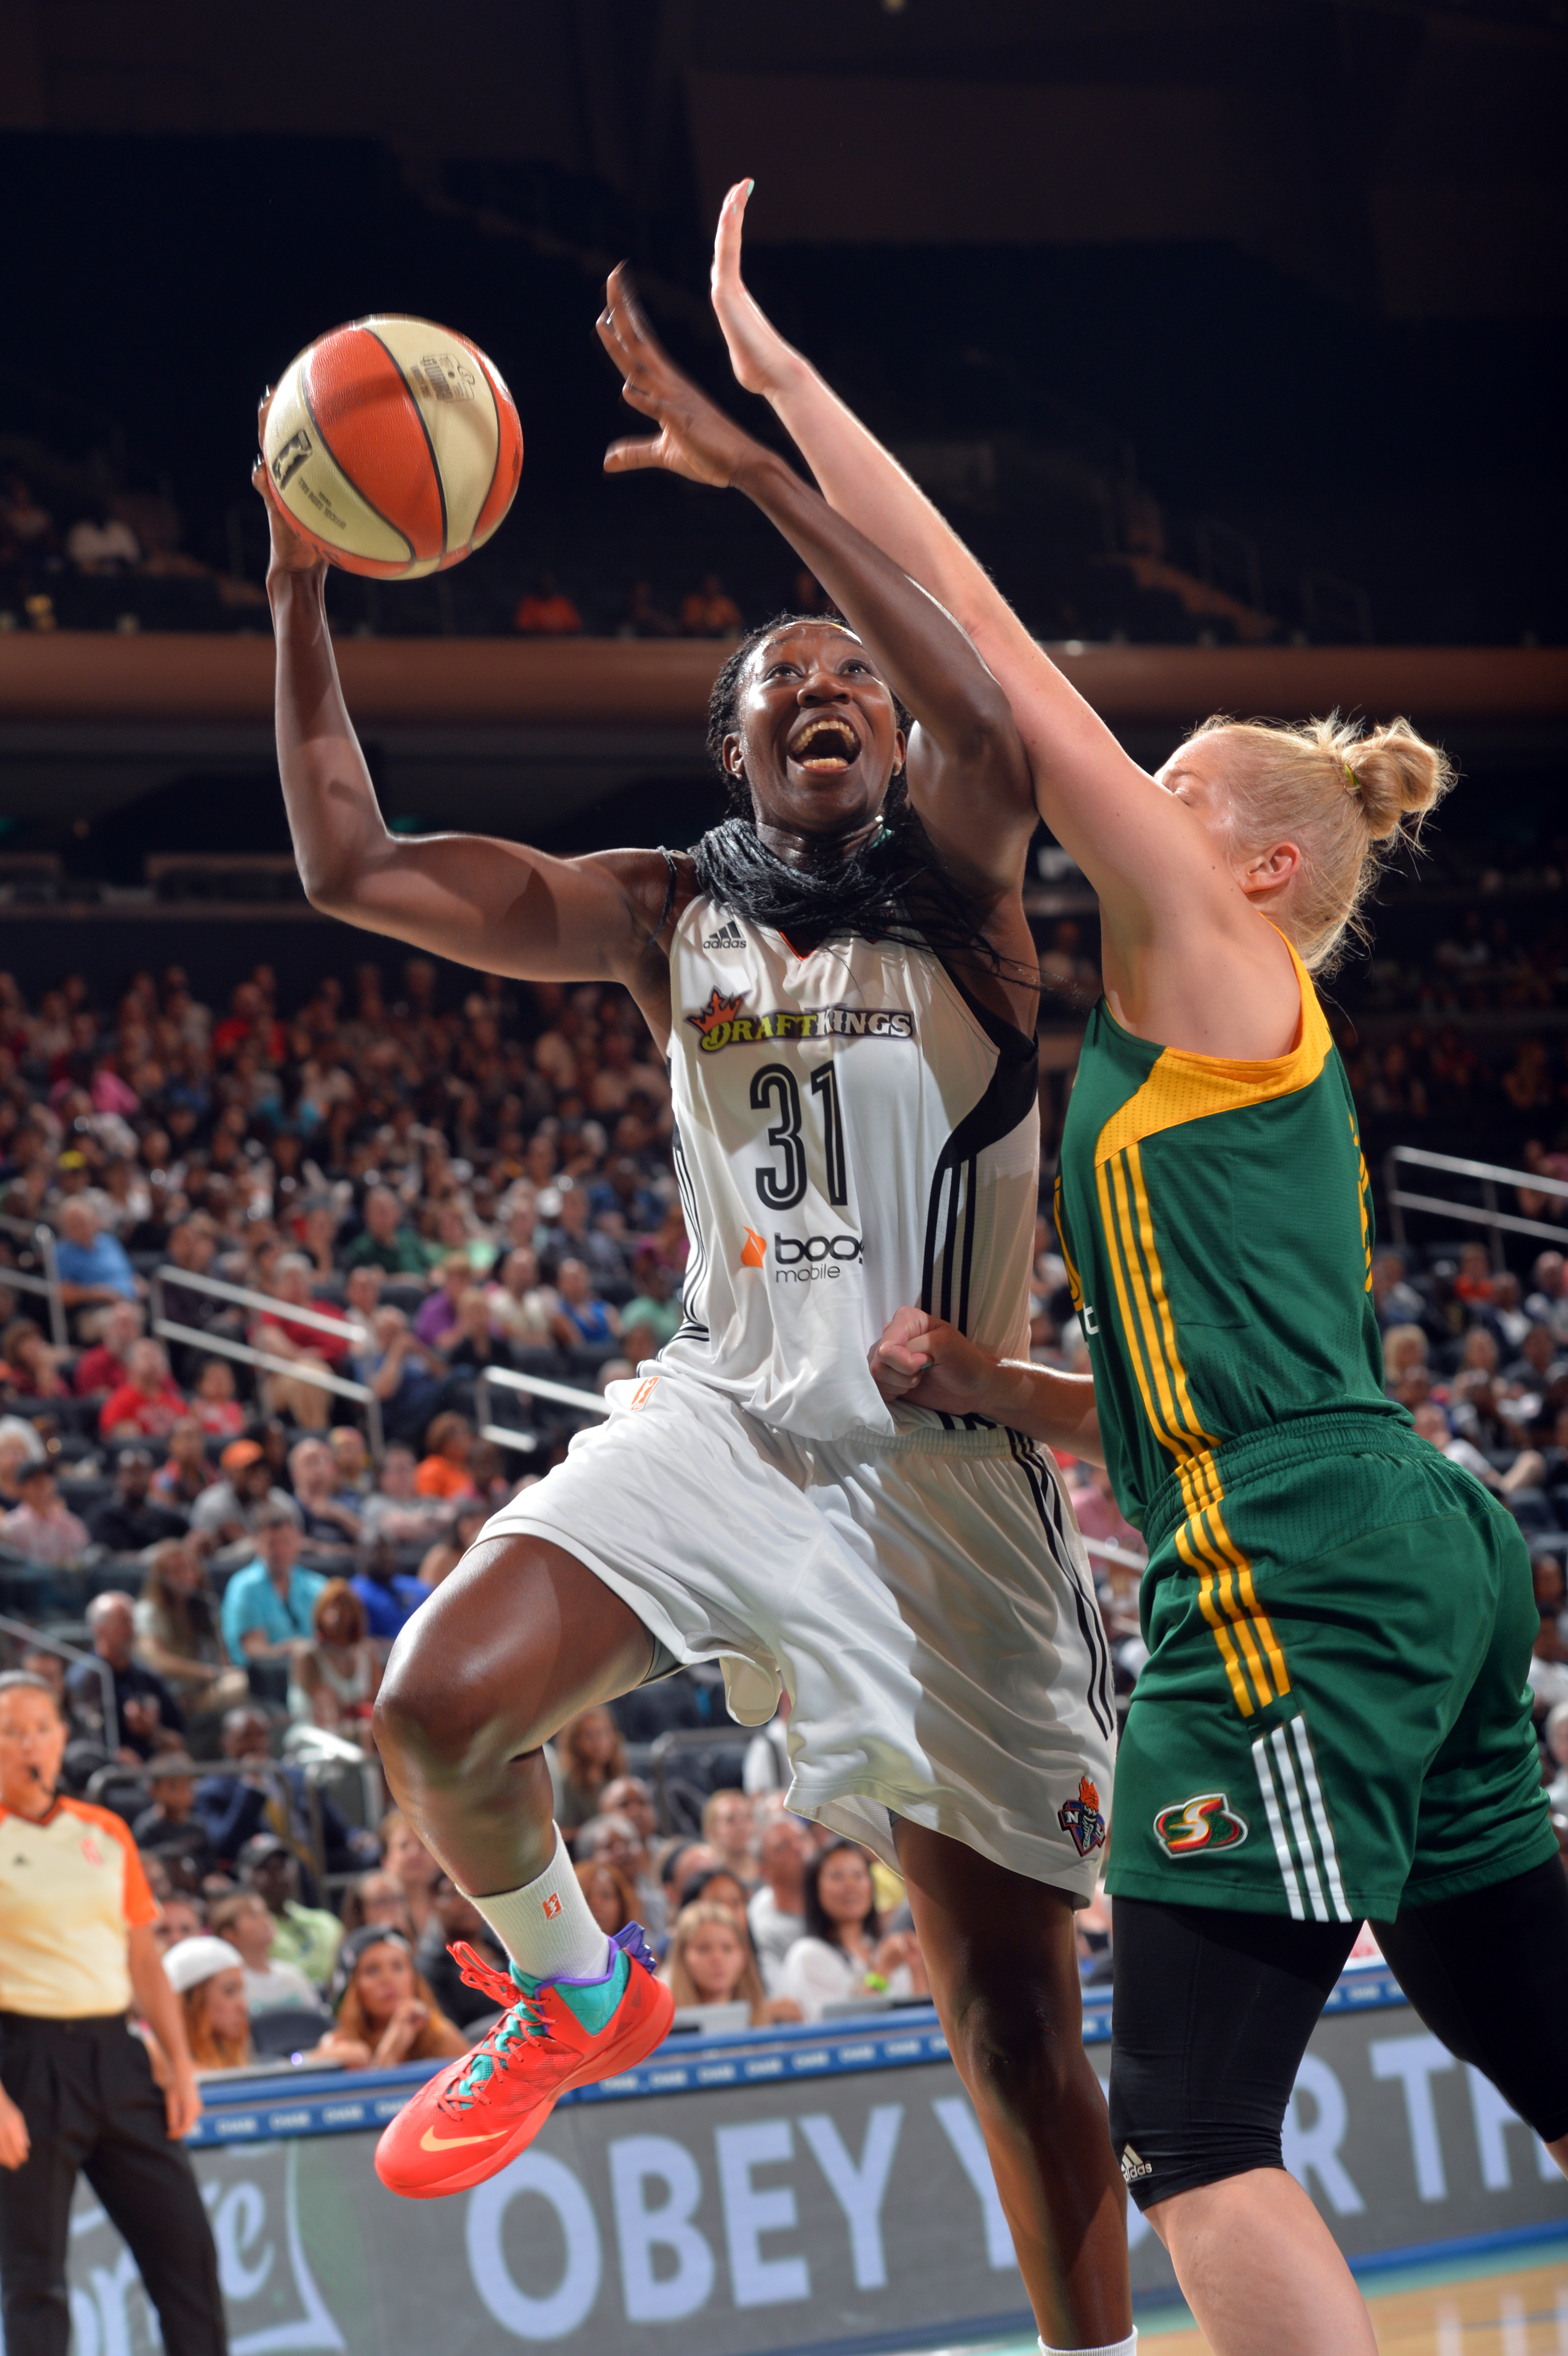 NEW YORK, NY - AUGUST 2: Tina Charles #31 of the New York Liberty goes for the lay up against the Seattle Storm on August 2, 2015 at Madison Square Garden in New York City, NY. (Photo by Jesse D. Garrabrant/NBAE via Getty Images